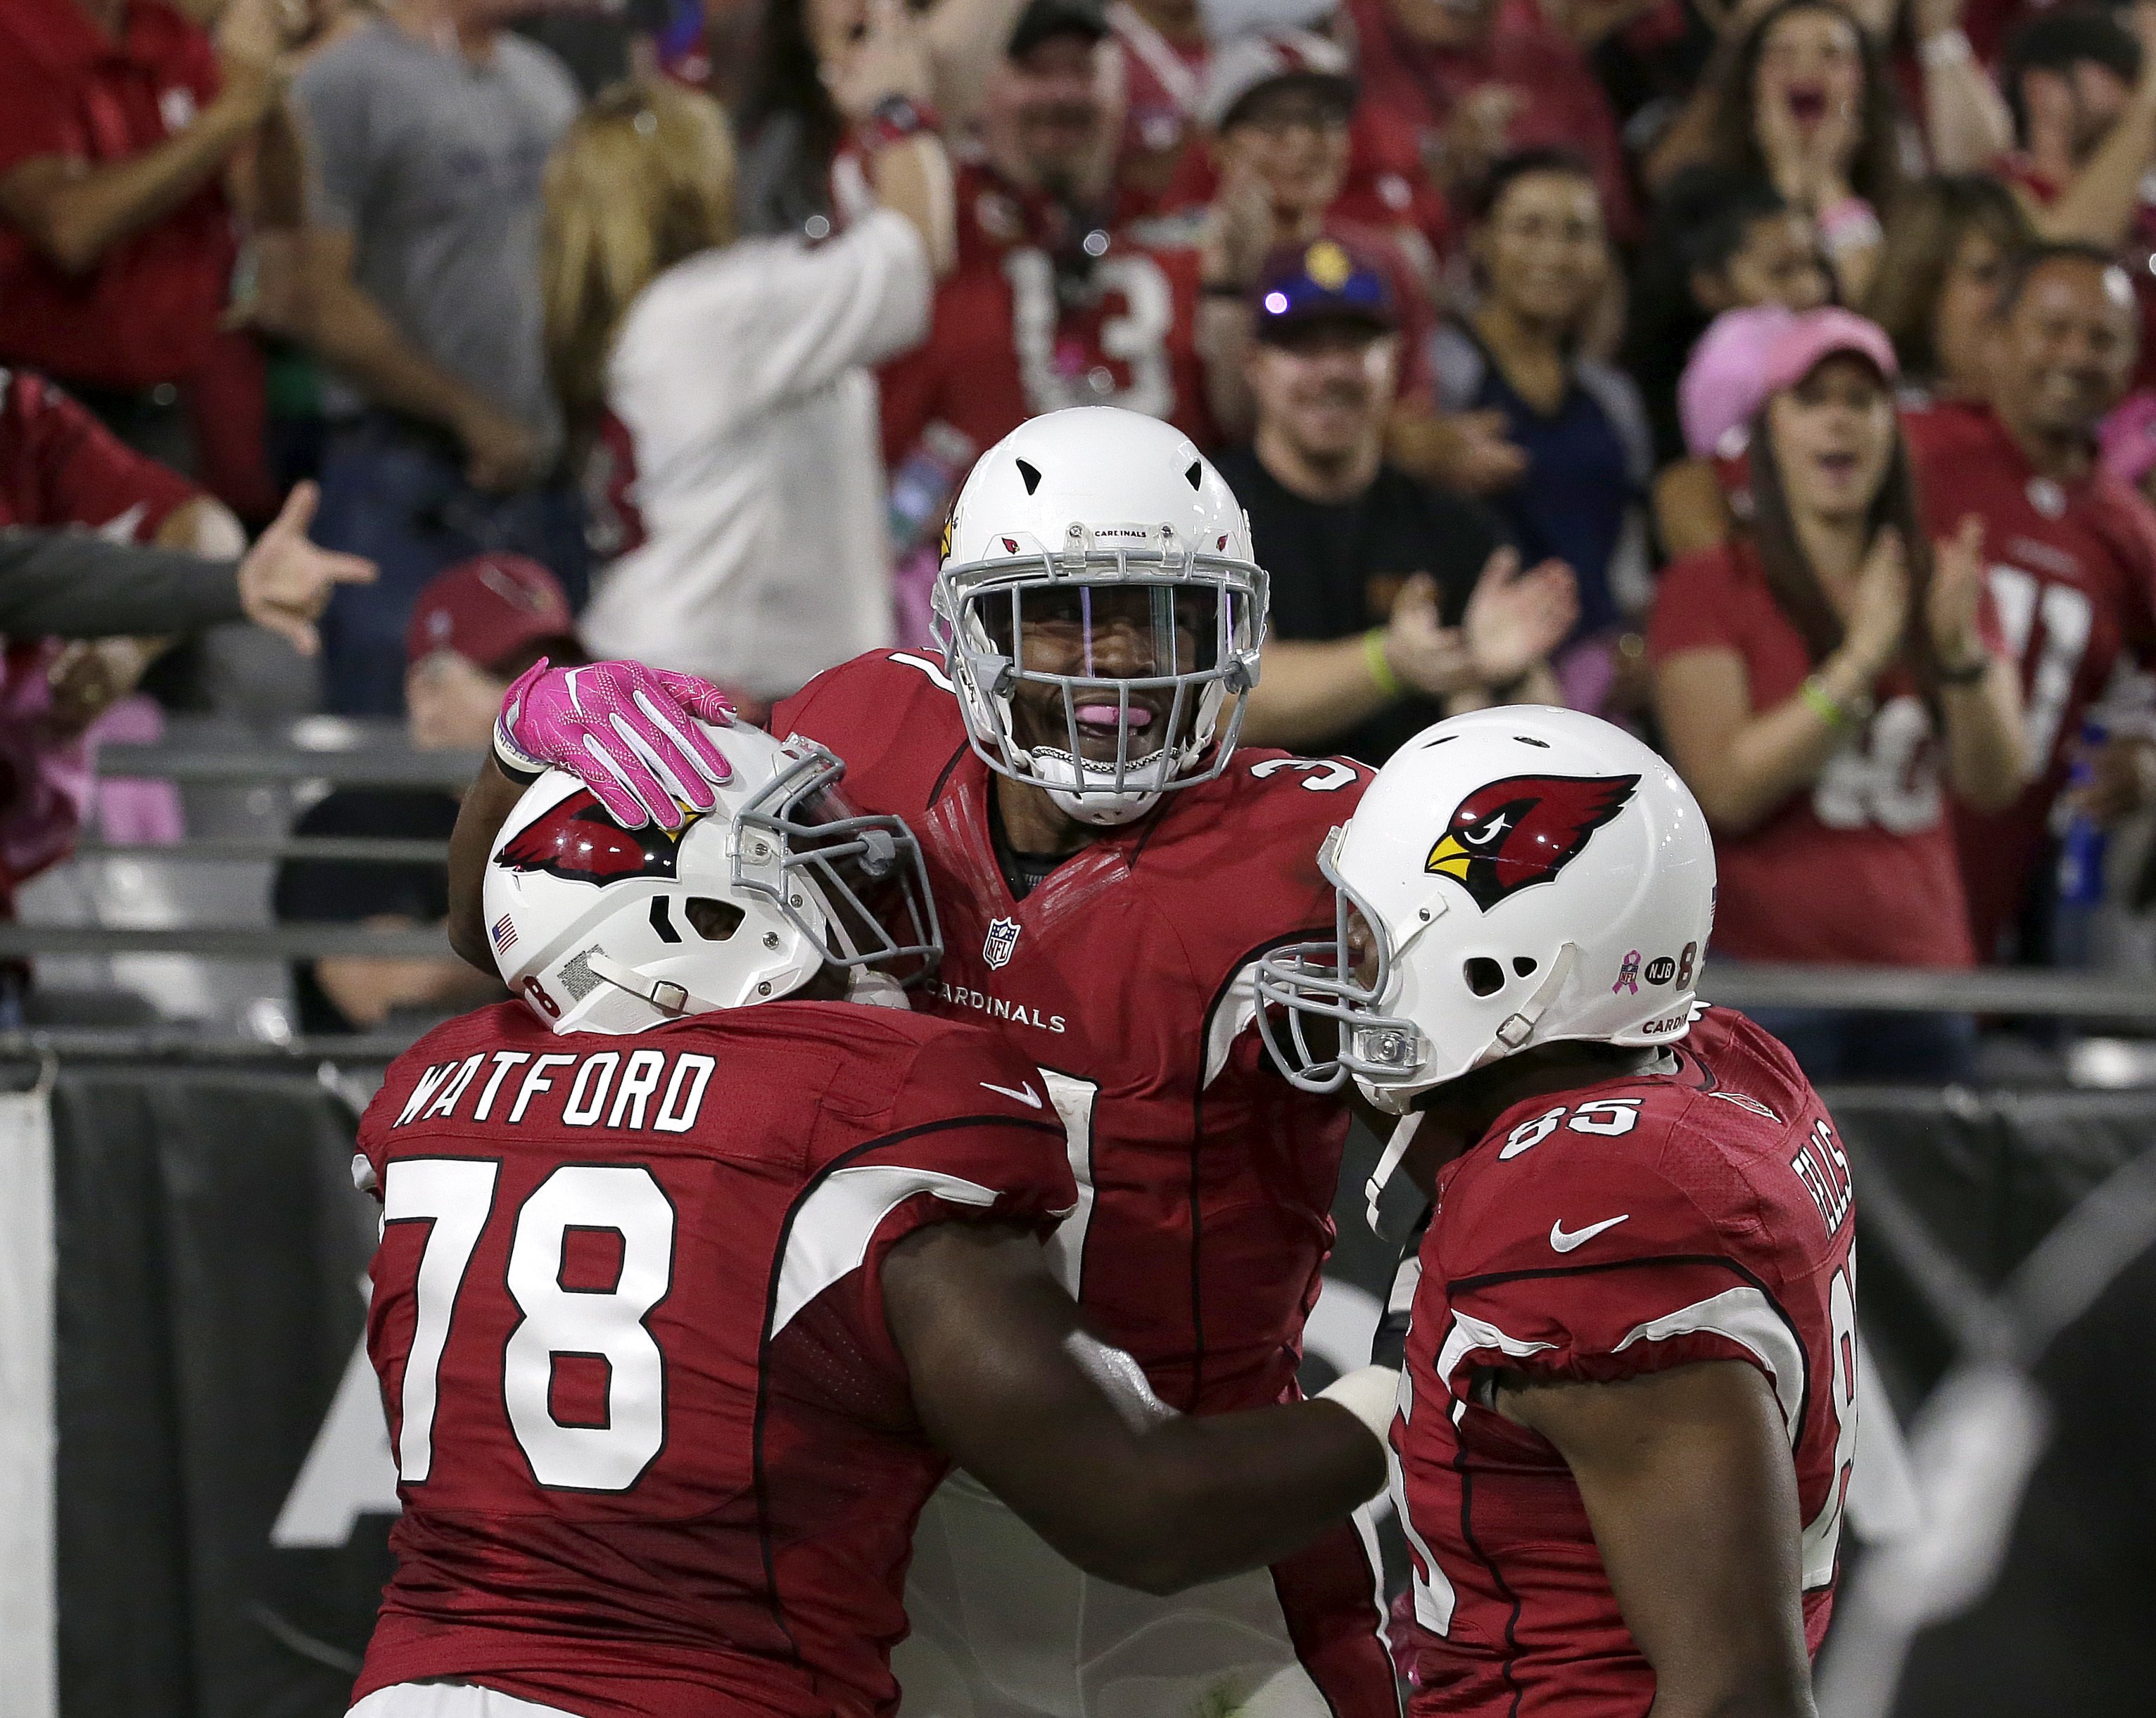 Arizona Cardinals running back David Johnson, center, celebrates his touchdown run with guard Earl Watford (78) and tight end Darren Fells (85) during the first half of an NFL football game against the New York Jets, Monday, Oct. 17, 2016, in Glendale, Ar